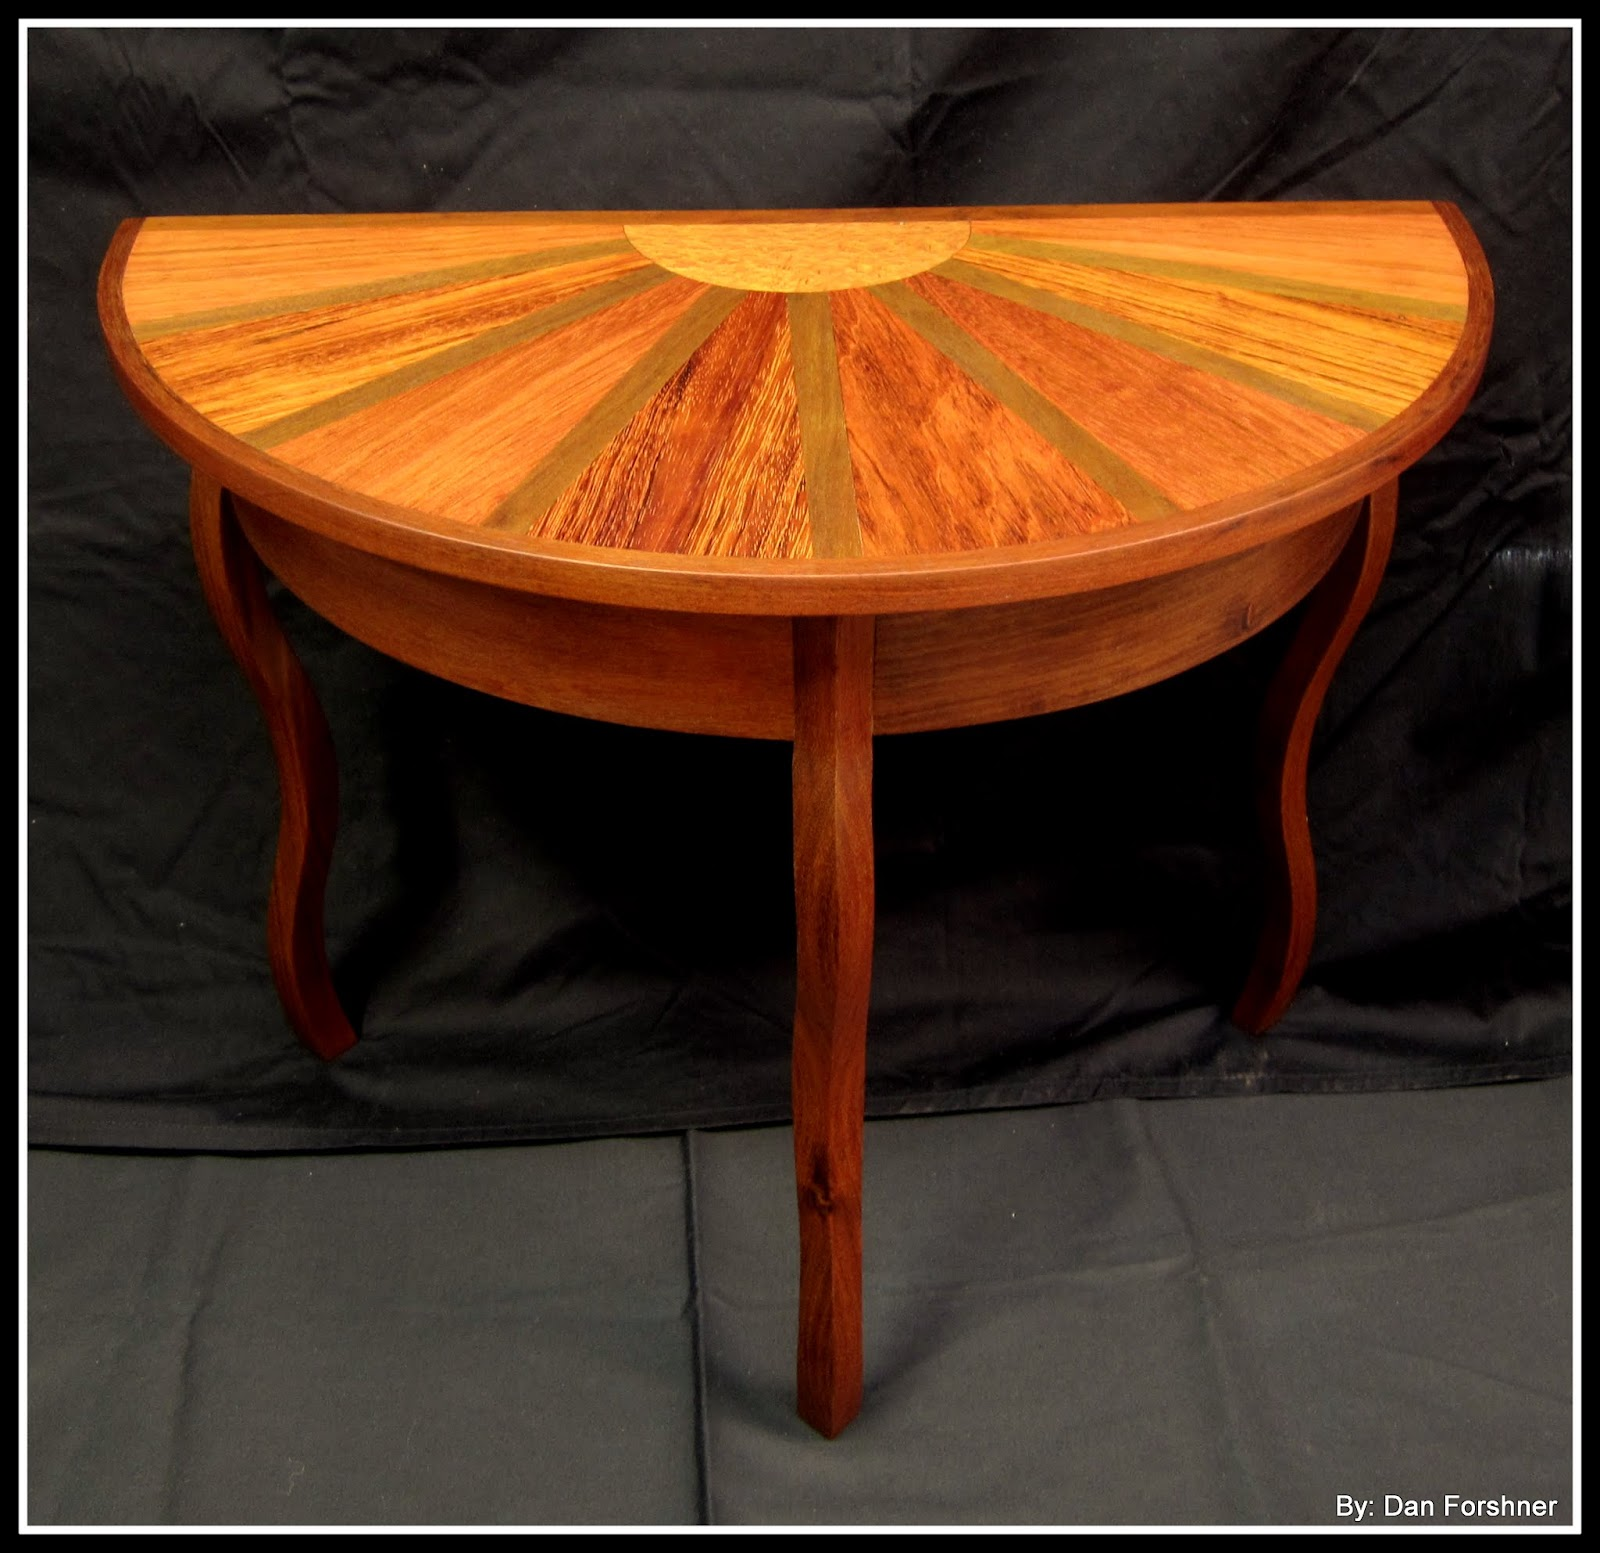 Half Circle Coffee Table Part - 42: This Table Is For Sale Here Http://forshnerdesigns.bigcartel.com/product/ Half-round-sunset-coffee-table